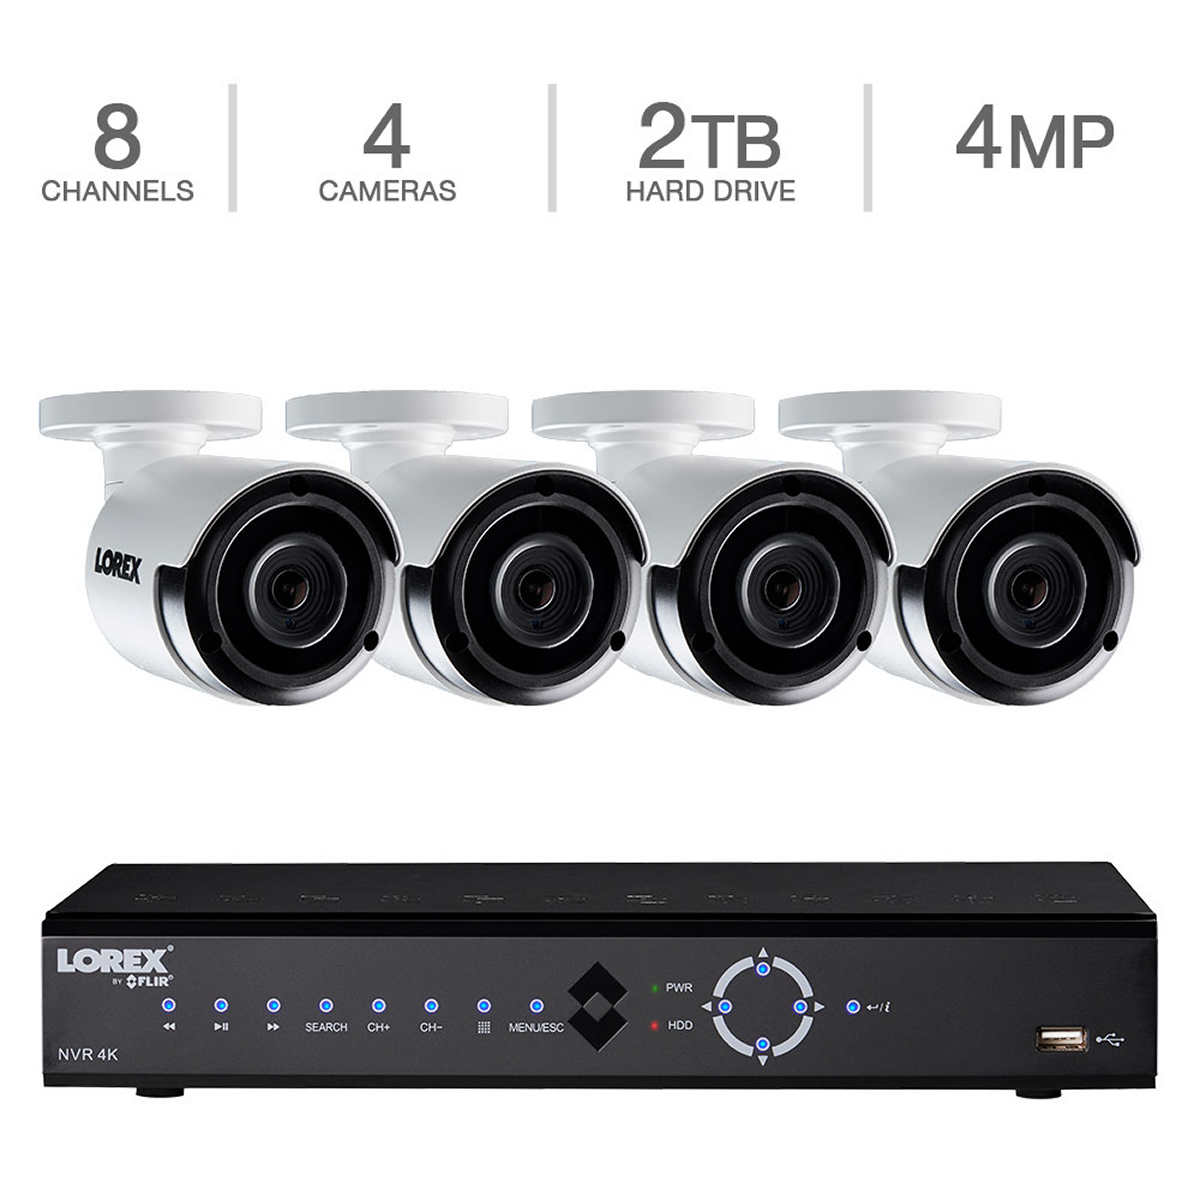 Lorex 8 Channel Hd Ip Nvr With 2tb Hdd 4 4mp Cameras With